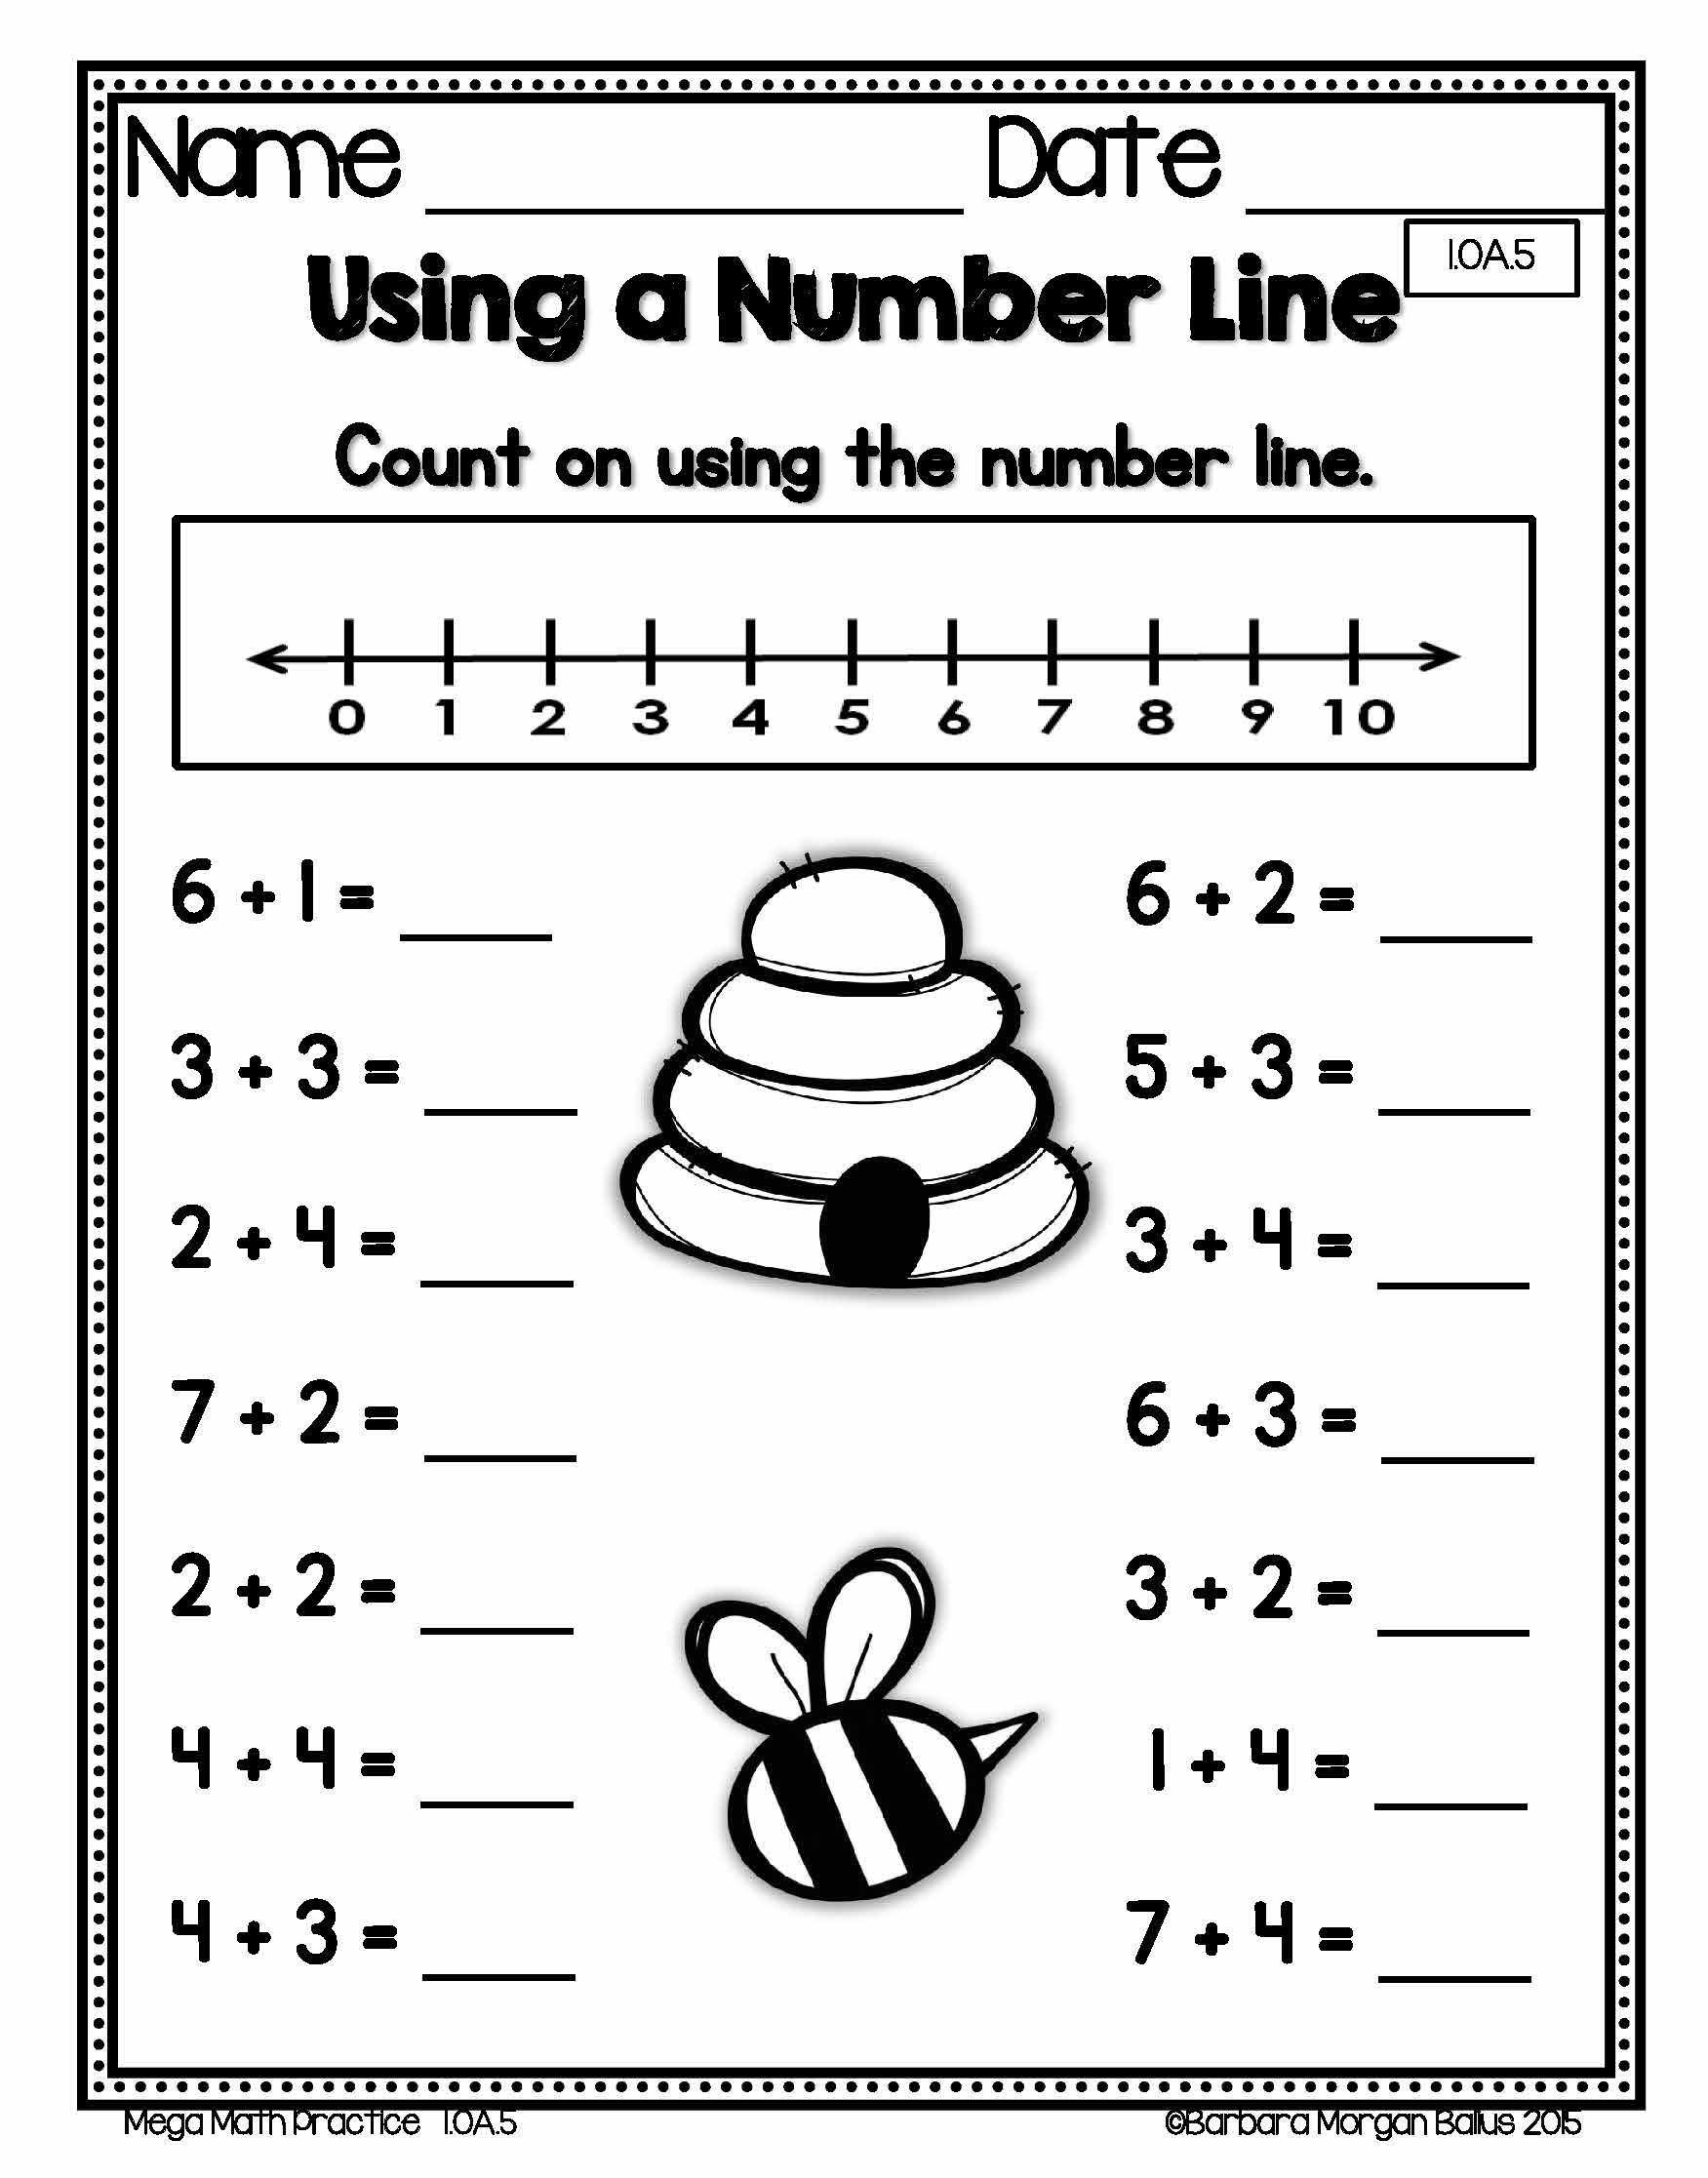 Uncategorized Common Core Math Worksheets For First Grade first grade math properties of operations mega practice 1 oa 5 5